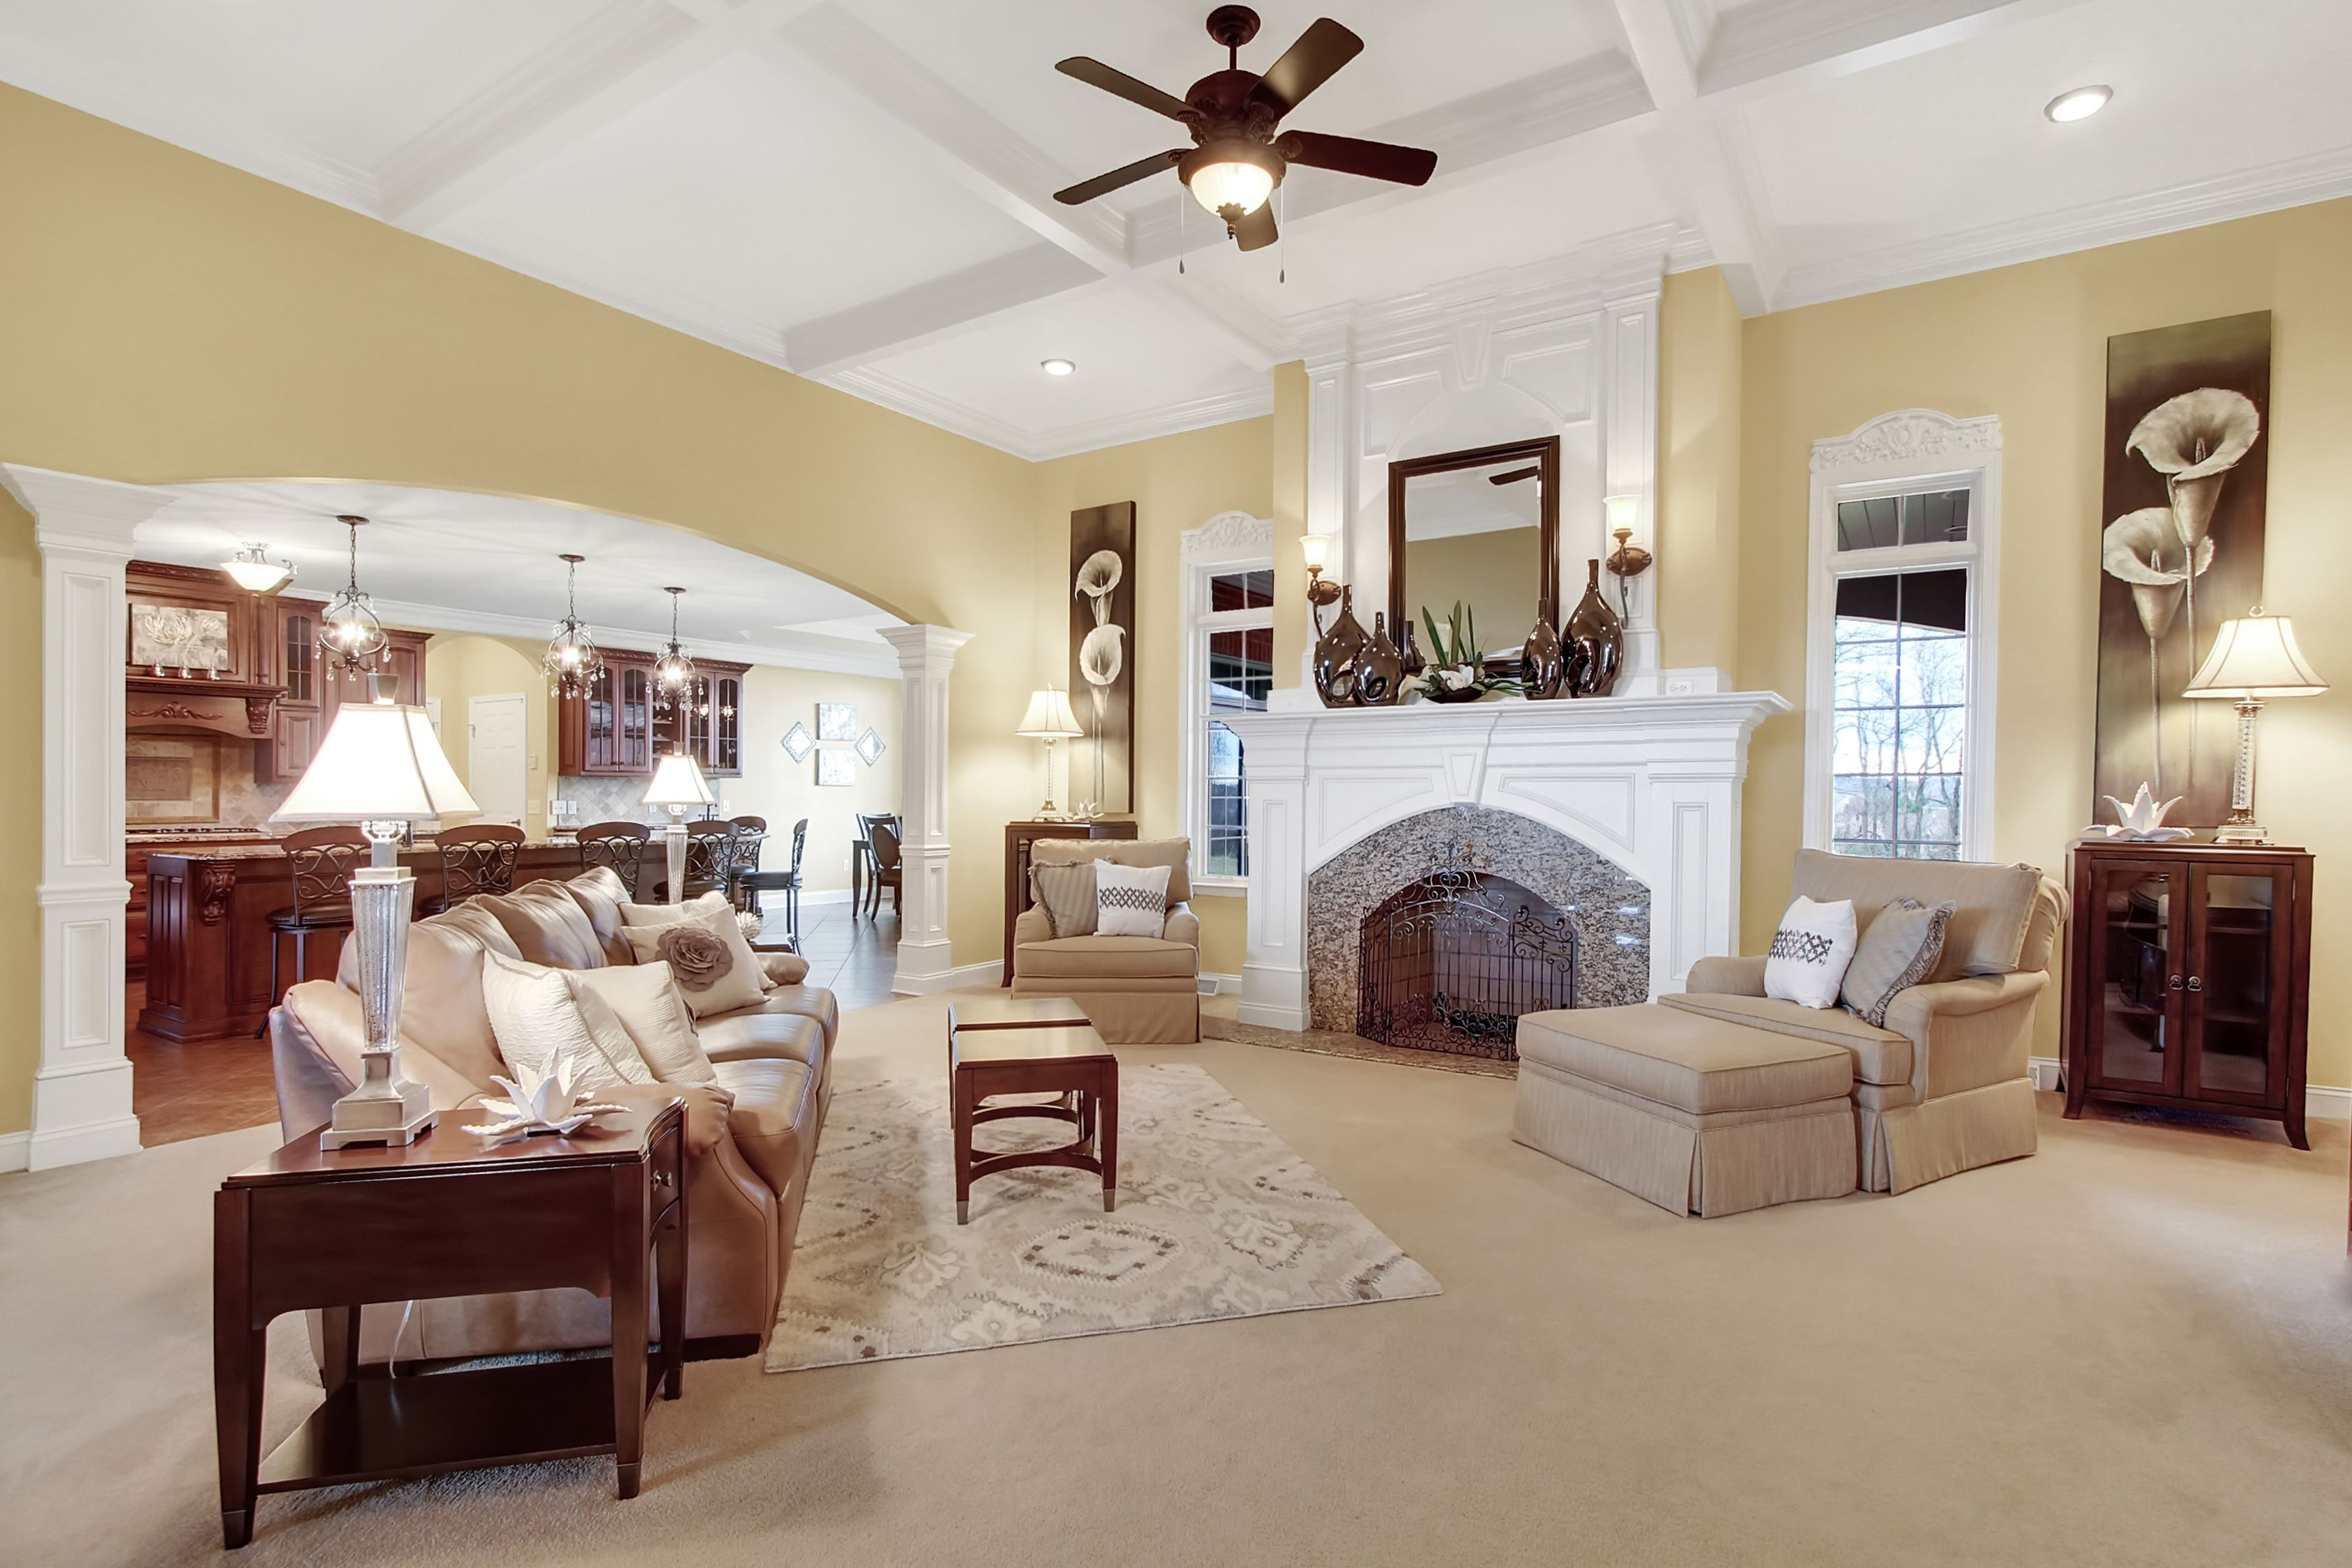 Photograph by Real Estate Exposures http://realestateexposures.com